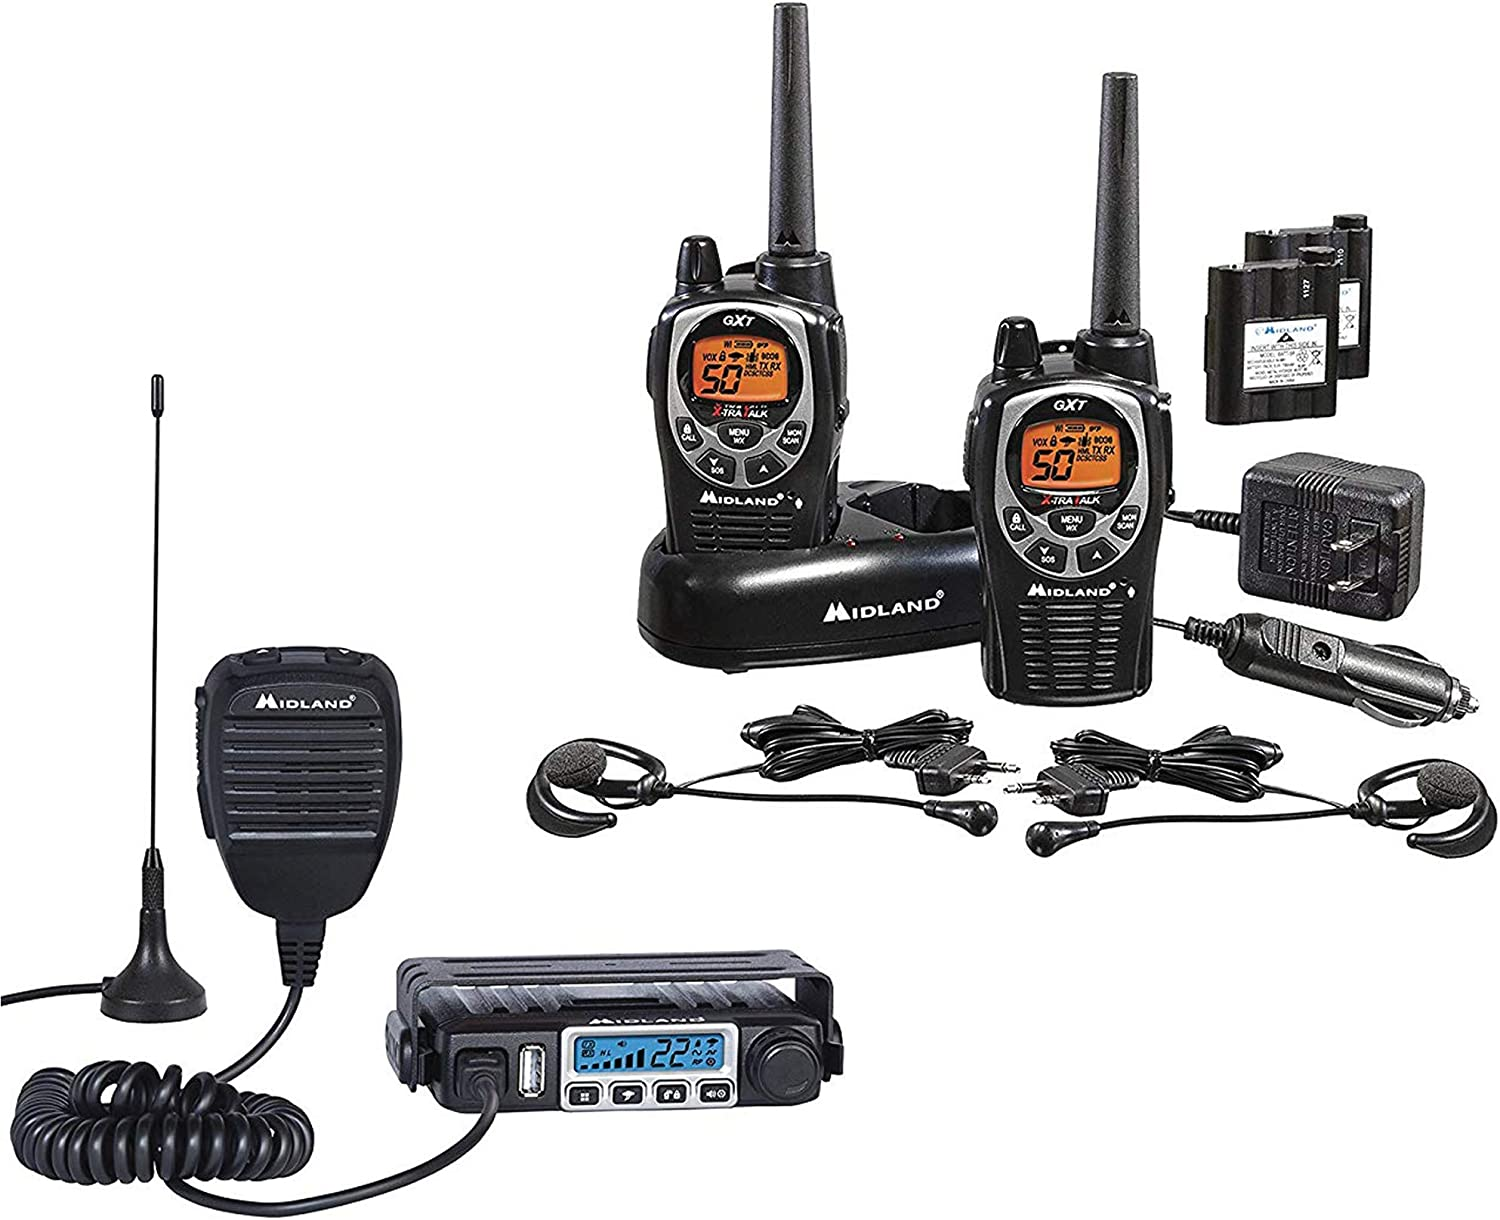 Midland – MXT115 GXT1000 Bundle – MicroMobile Two-Way Radio w External Magnetic Mount Antenna GXT1000 Two-Way Radio – Up to 36 Mile Range Water Resistant Walkie Talkies Pair Pack Black Silver